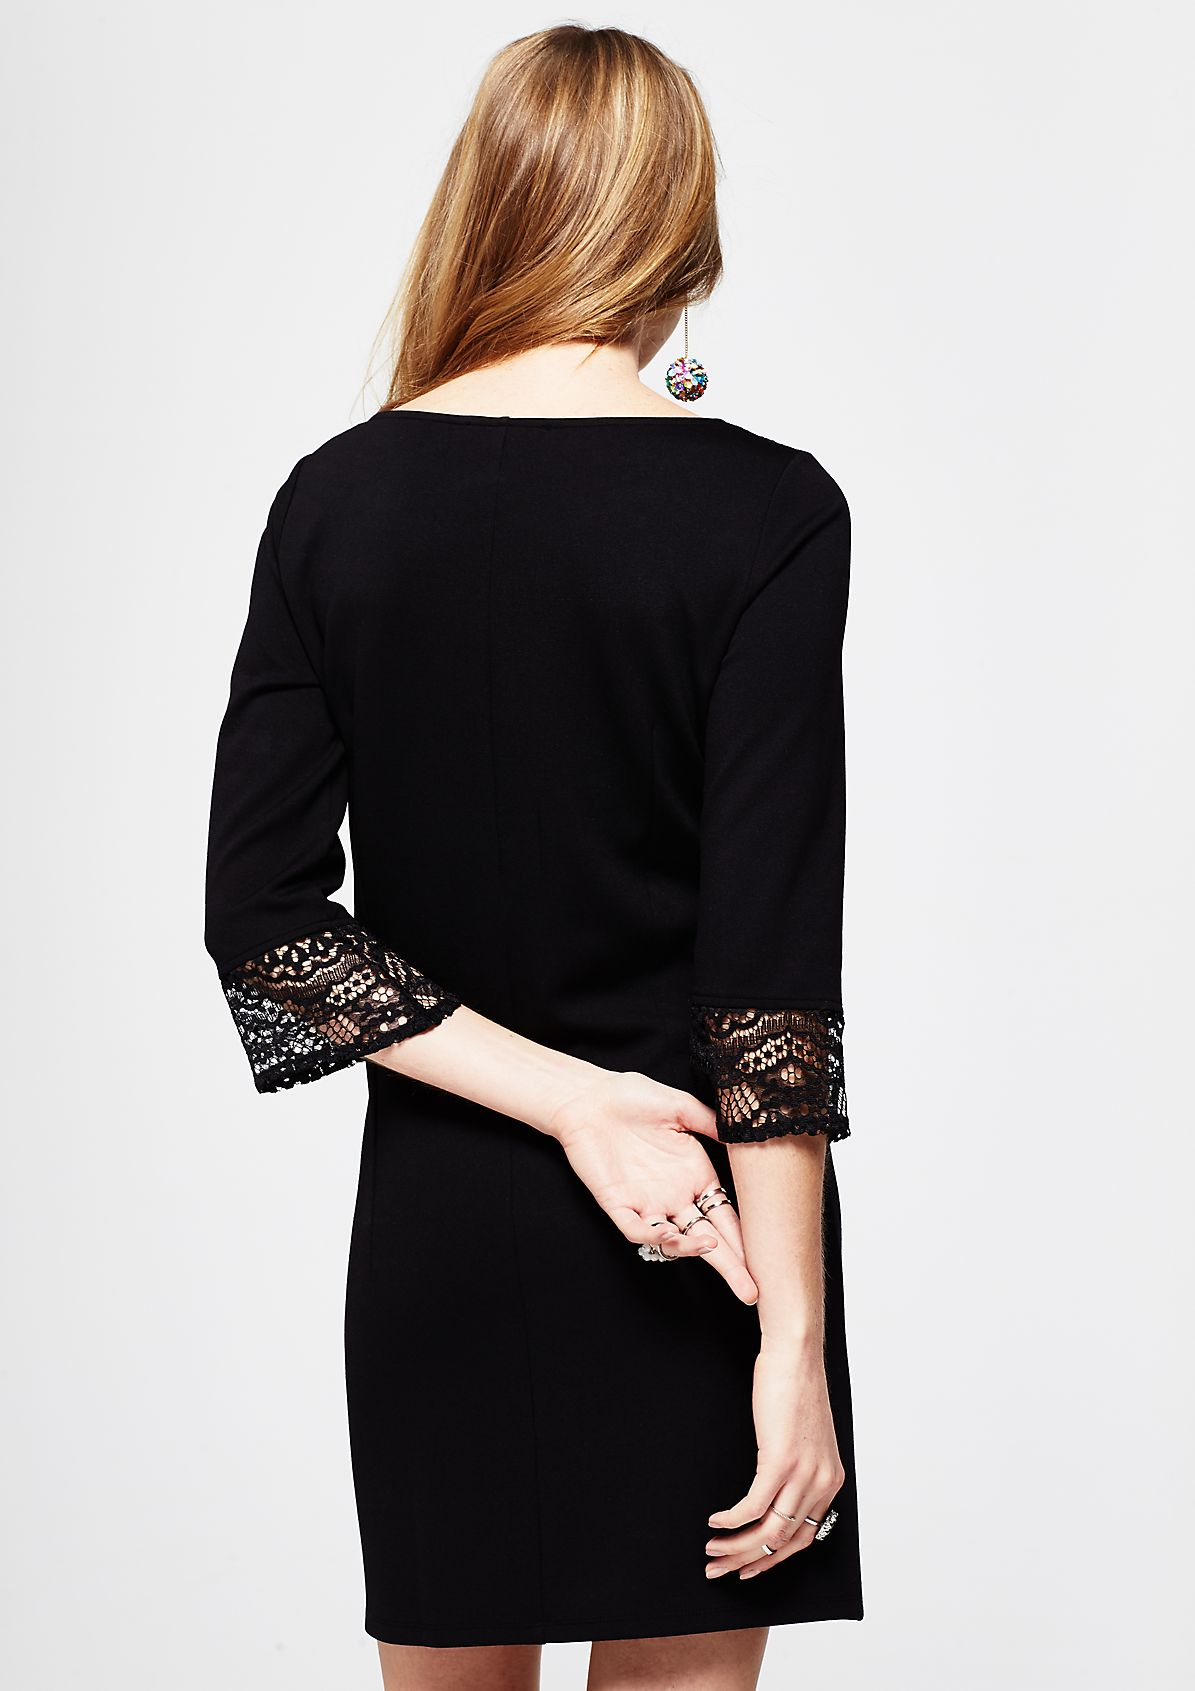 Glamorous evening dress with lace decoration from s.Oliver